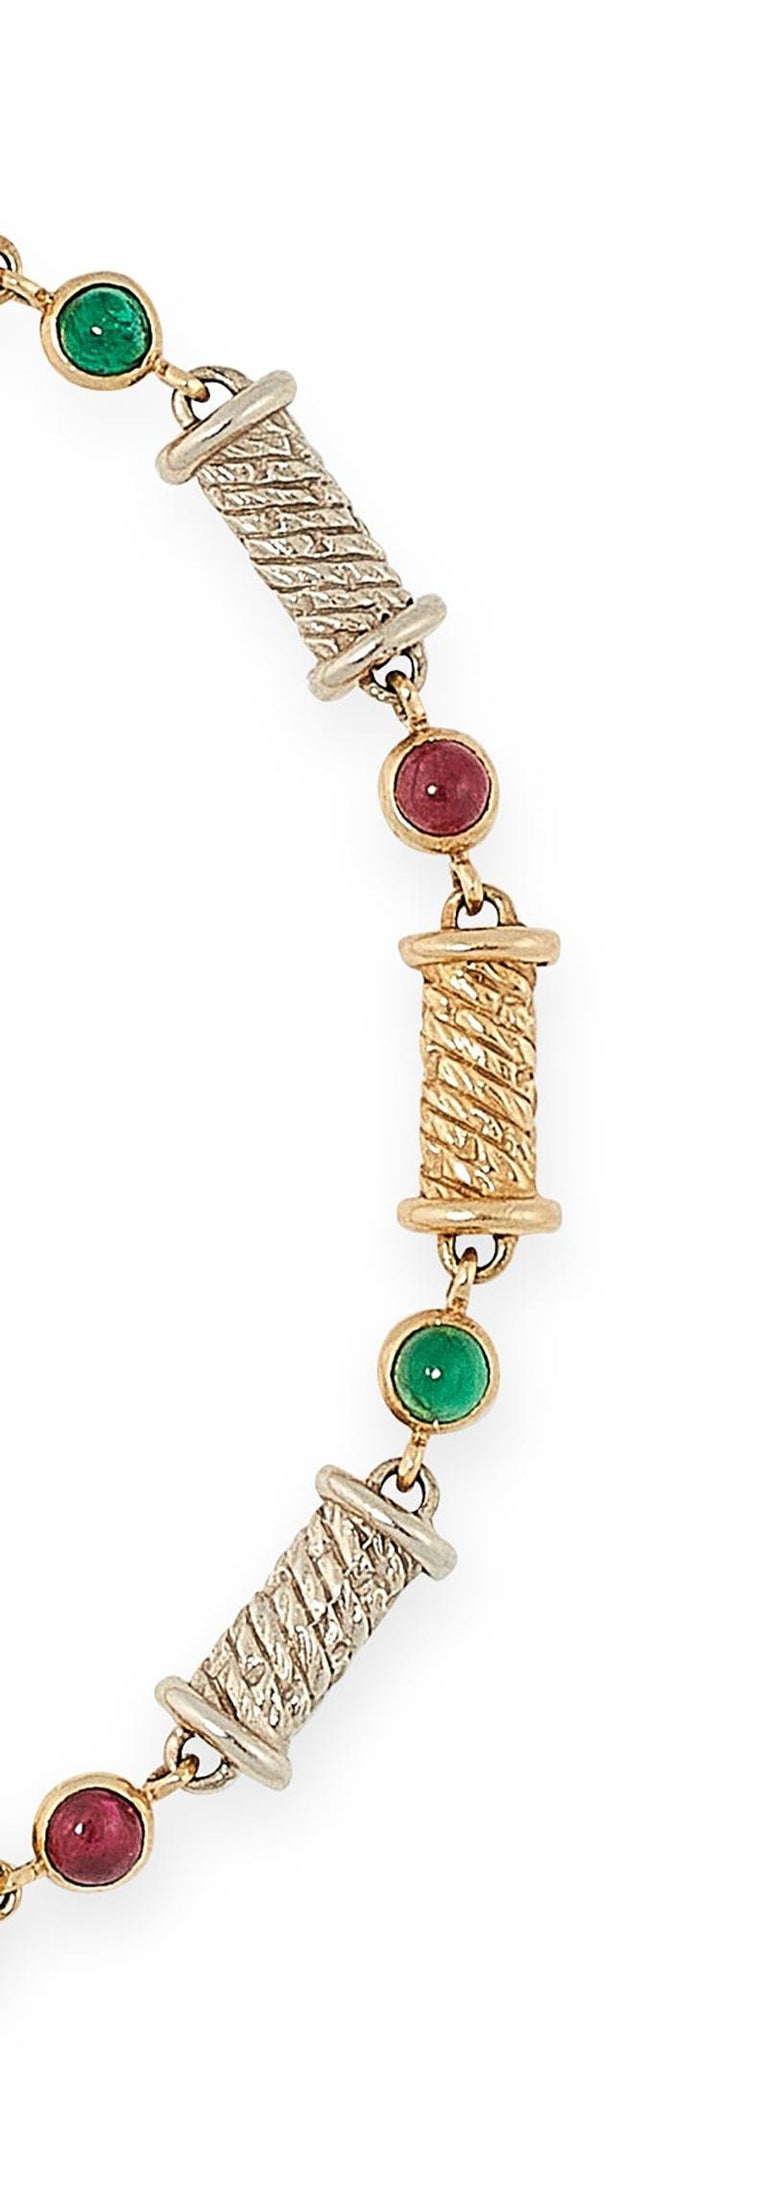 A fun and lively Van Cleef & Arpels ruby and emerald bracelet formed of fancy rope decorated links in alternating yellow and white gold, punctuated by round cabochon rubies and emeralds. Signed VCA and numbered, French assay marks for 18K